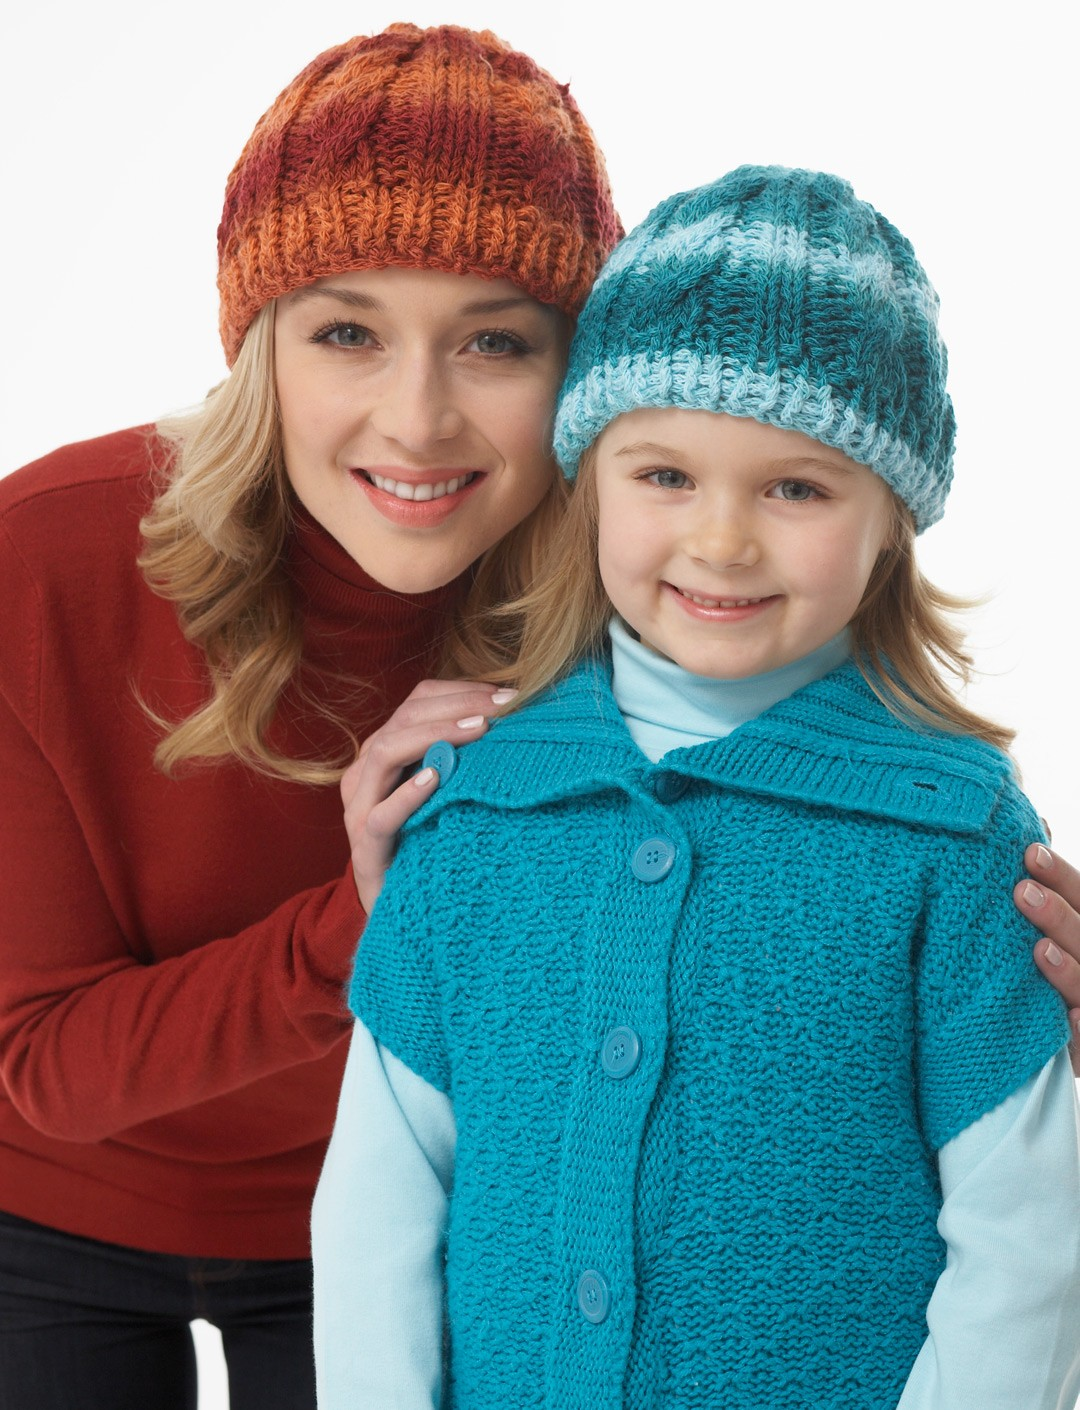 Bernat Knitting Patterns Free : Bernat Cable Hat, Knit Pattern Yarnspirations